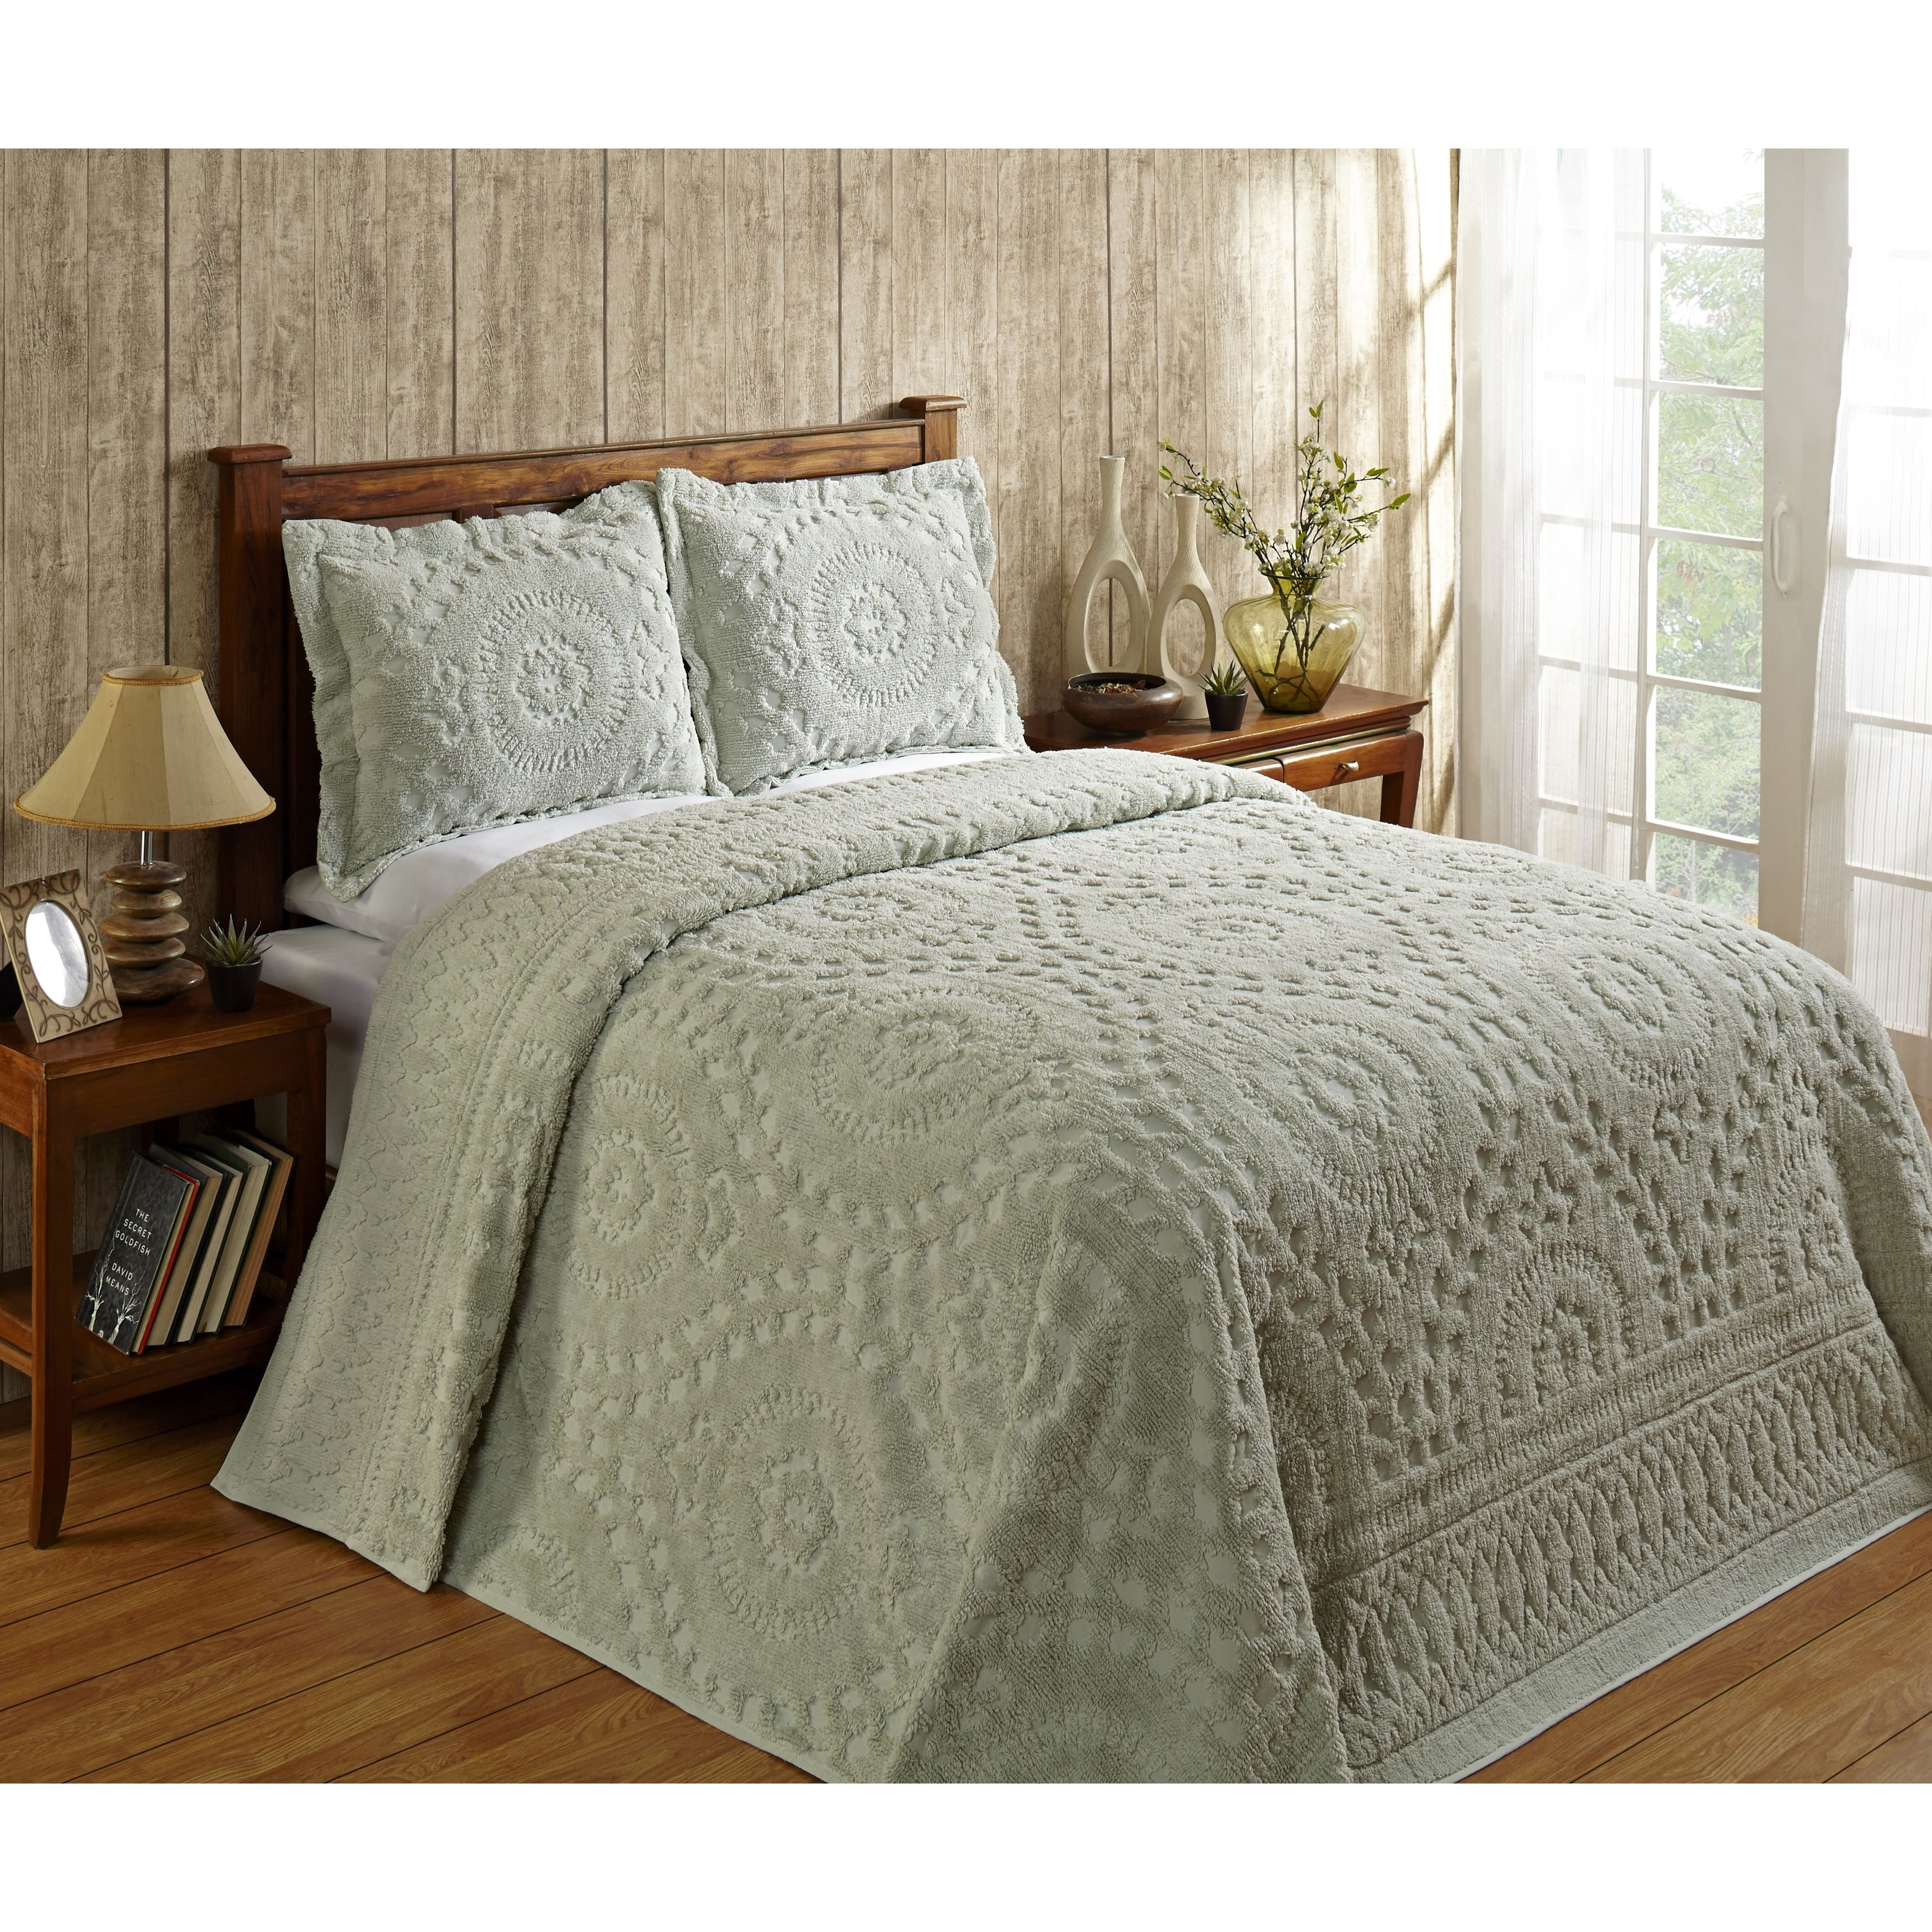 Heirloom Chenille Bedspread Bed Spreads Chenille Bedspread